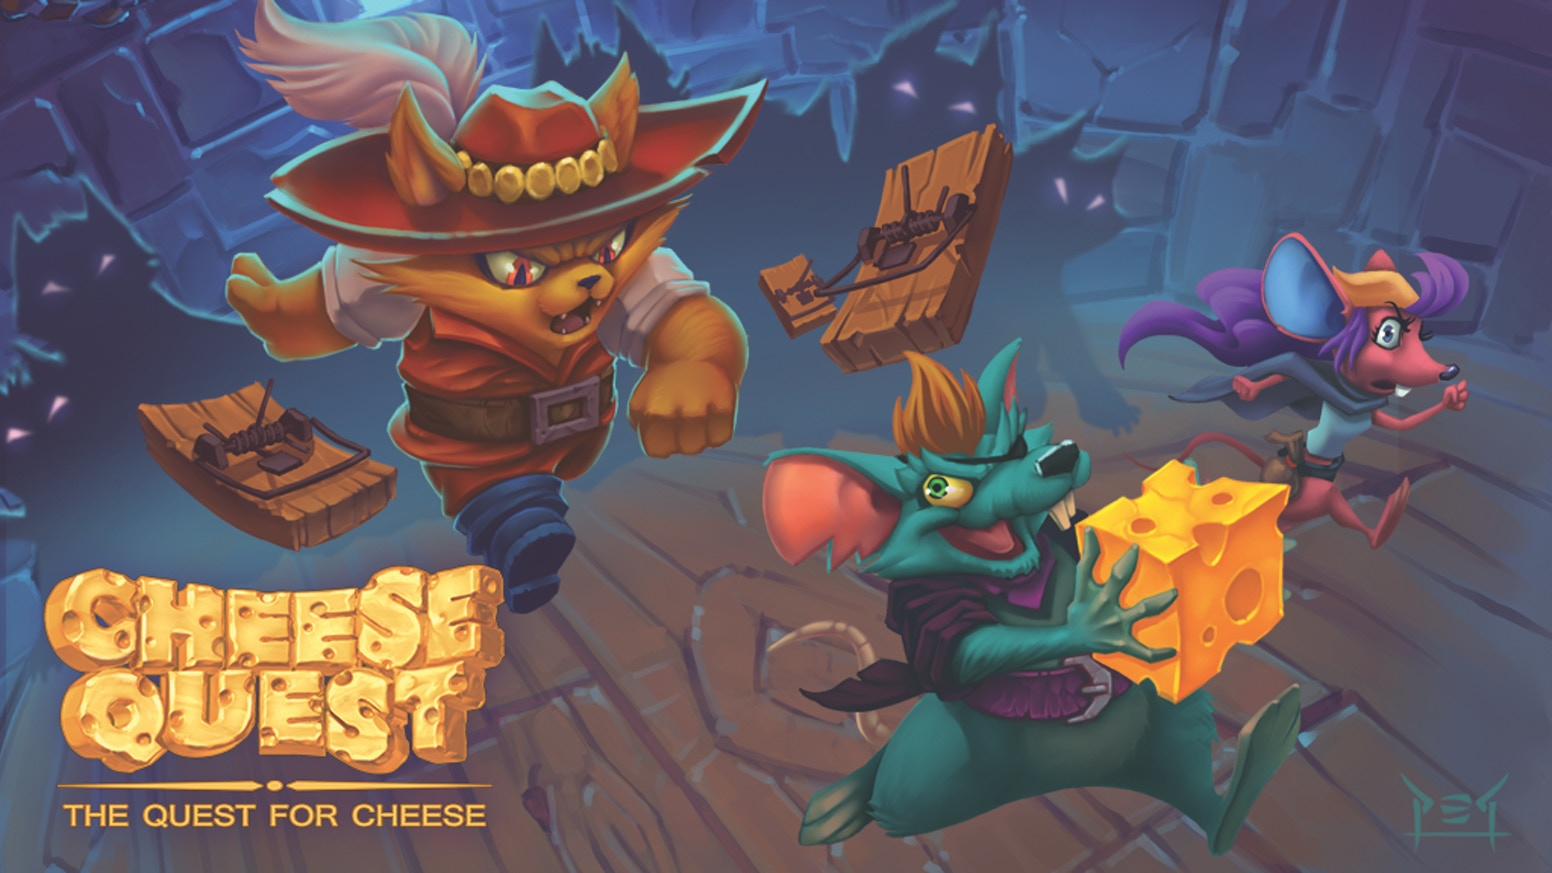 Be crafty, strategic, and fast! You'll split your time between progress and sabotage as you race to return TWO cheeses to the nest.